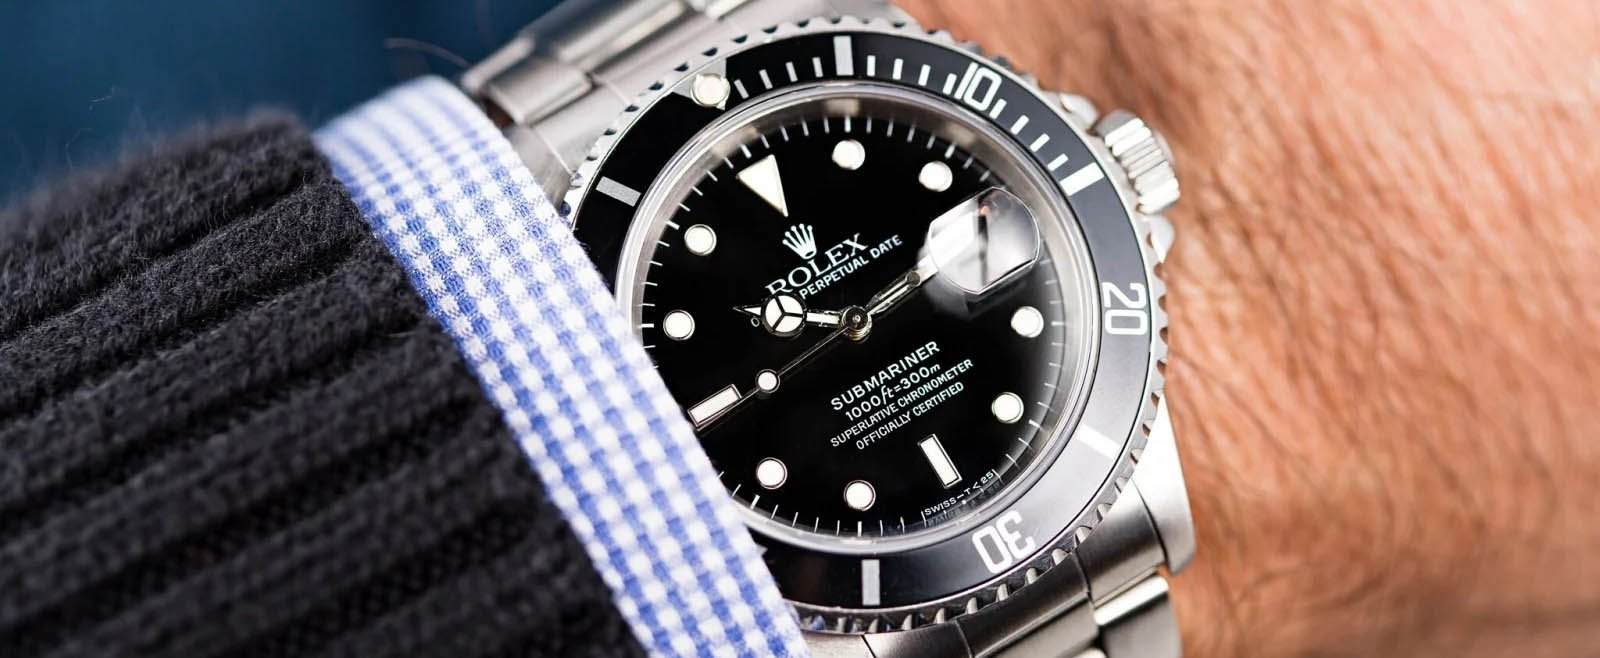 Wearing Rolex Submariner on Wrists